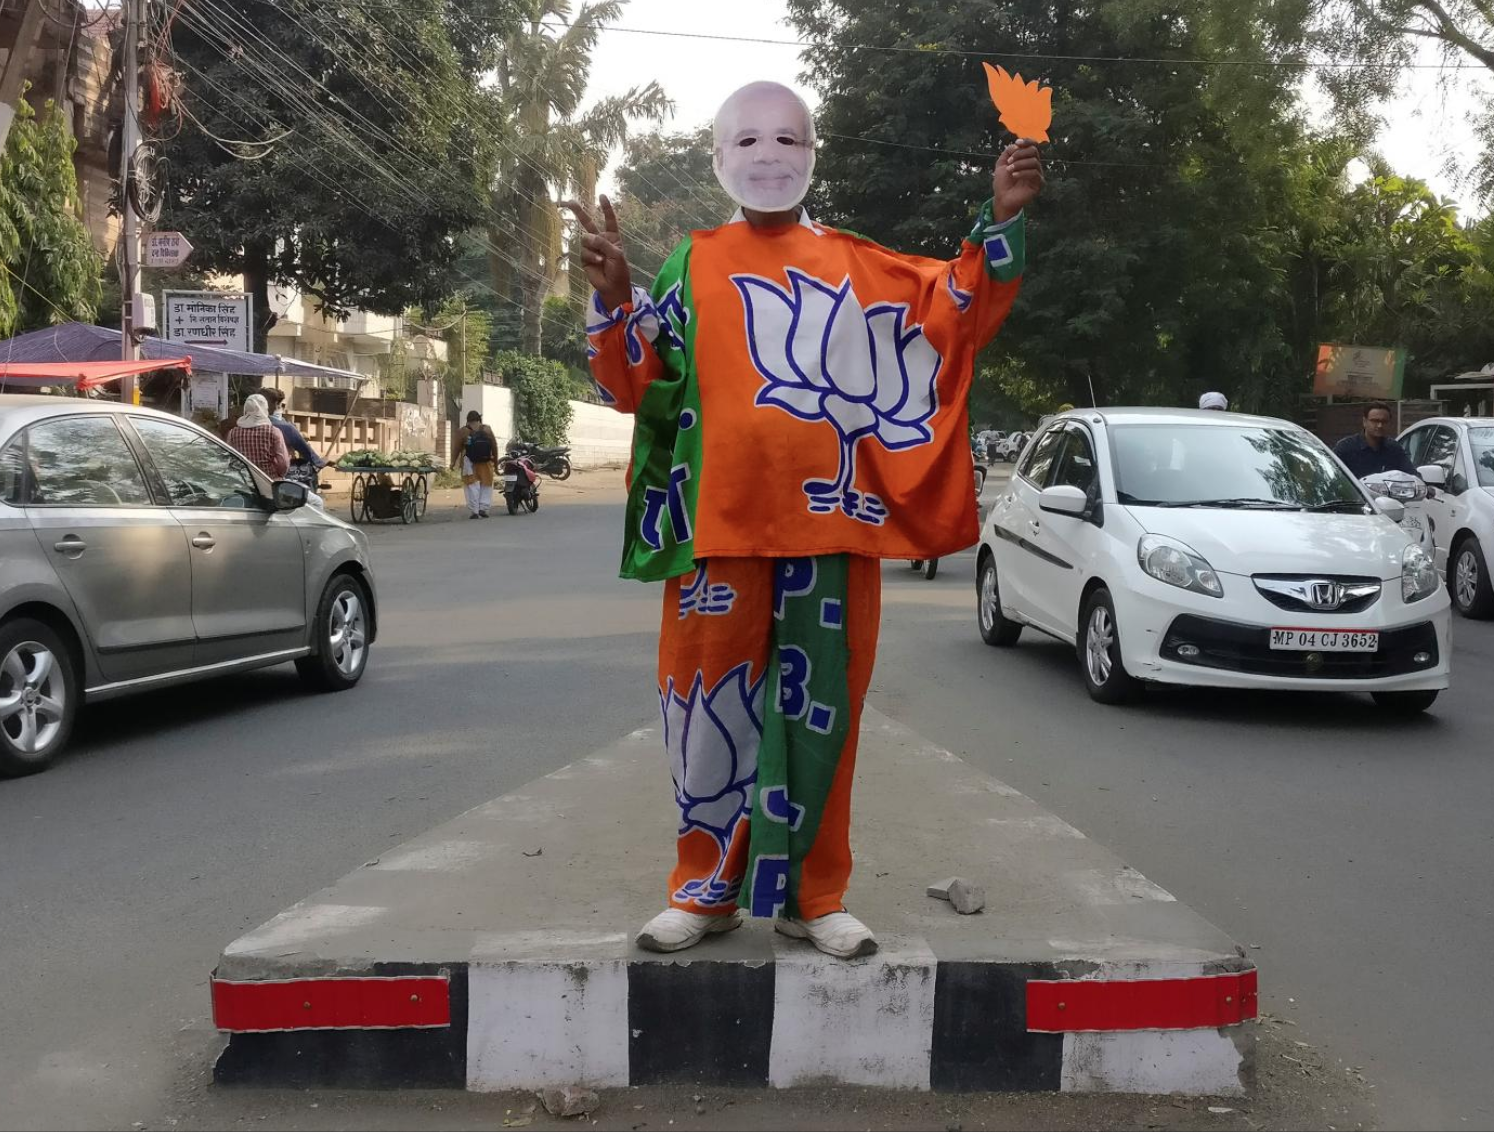 A supporter of the BJP party dresses as Prime Minister Modi in Bhopal, Madhya Pradesh, India. Photo:  Rajendra Jadha/Reuters